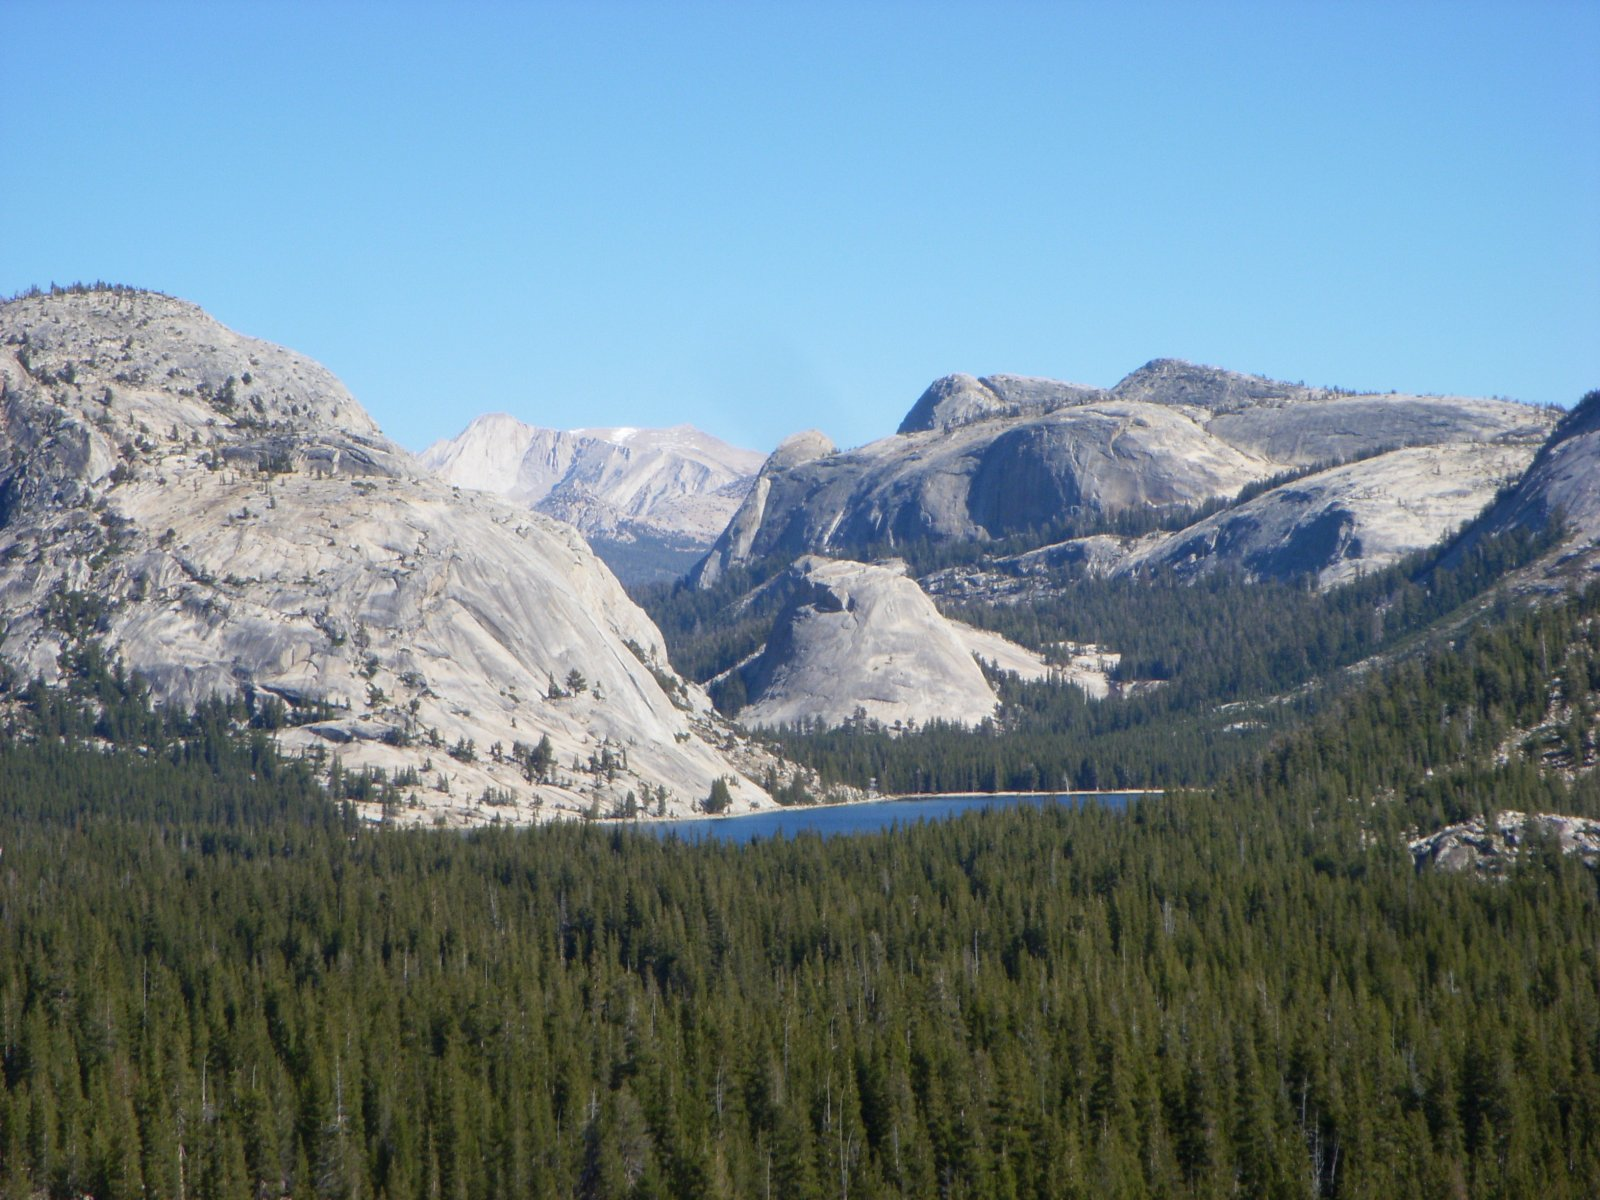 Click image for larger version  Name:Yosemite Oct2011 1812.jpg Views:78 Size:317.1 KB ID:144376